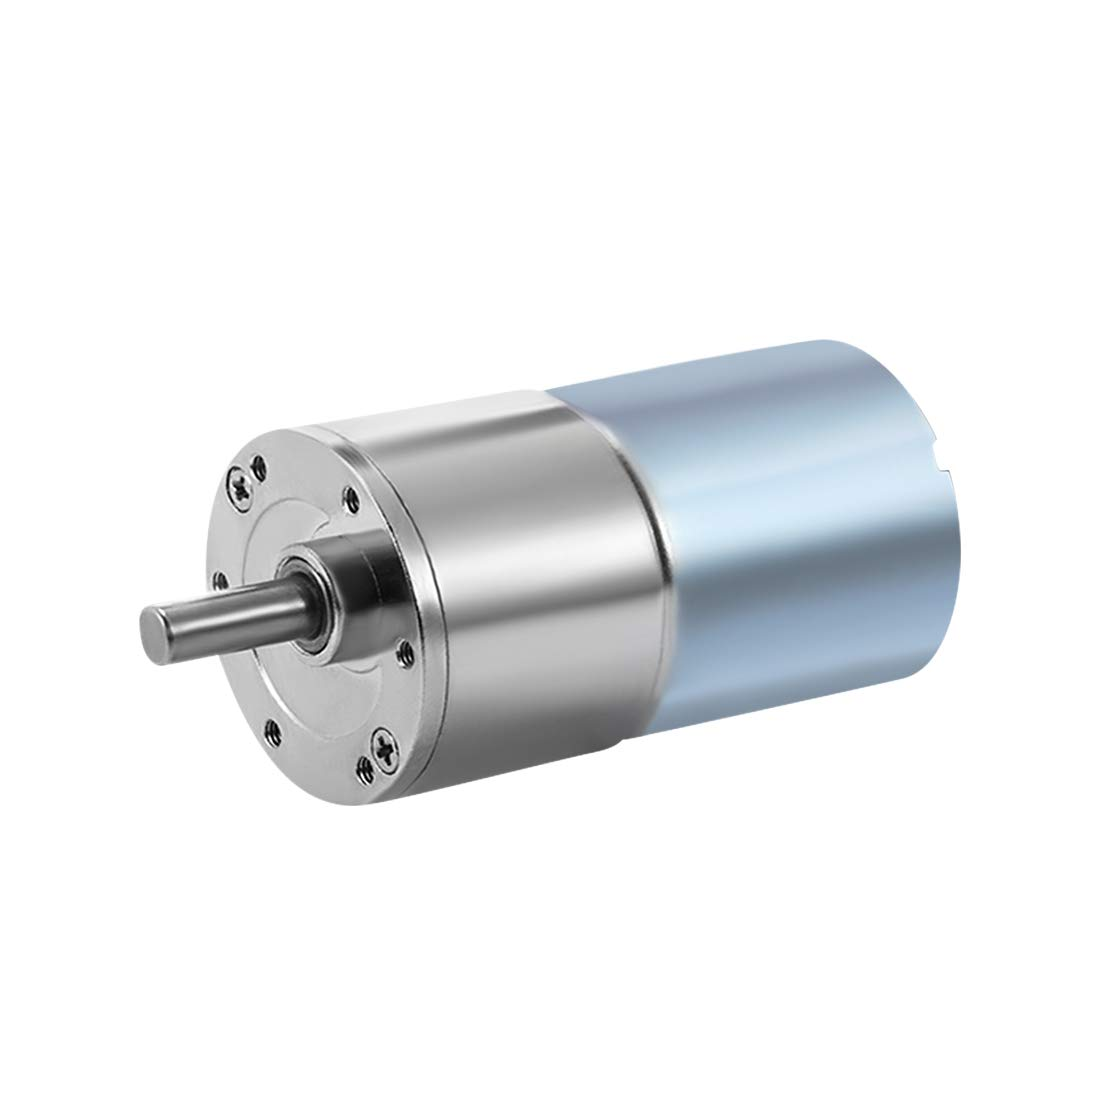 uxcell 12V DC 1000RPM Gear Motor Electric Micro Speed Reduction Geared Motor Eccentric Output Shaft